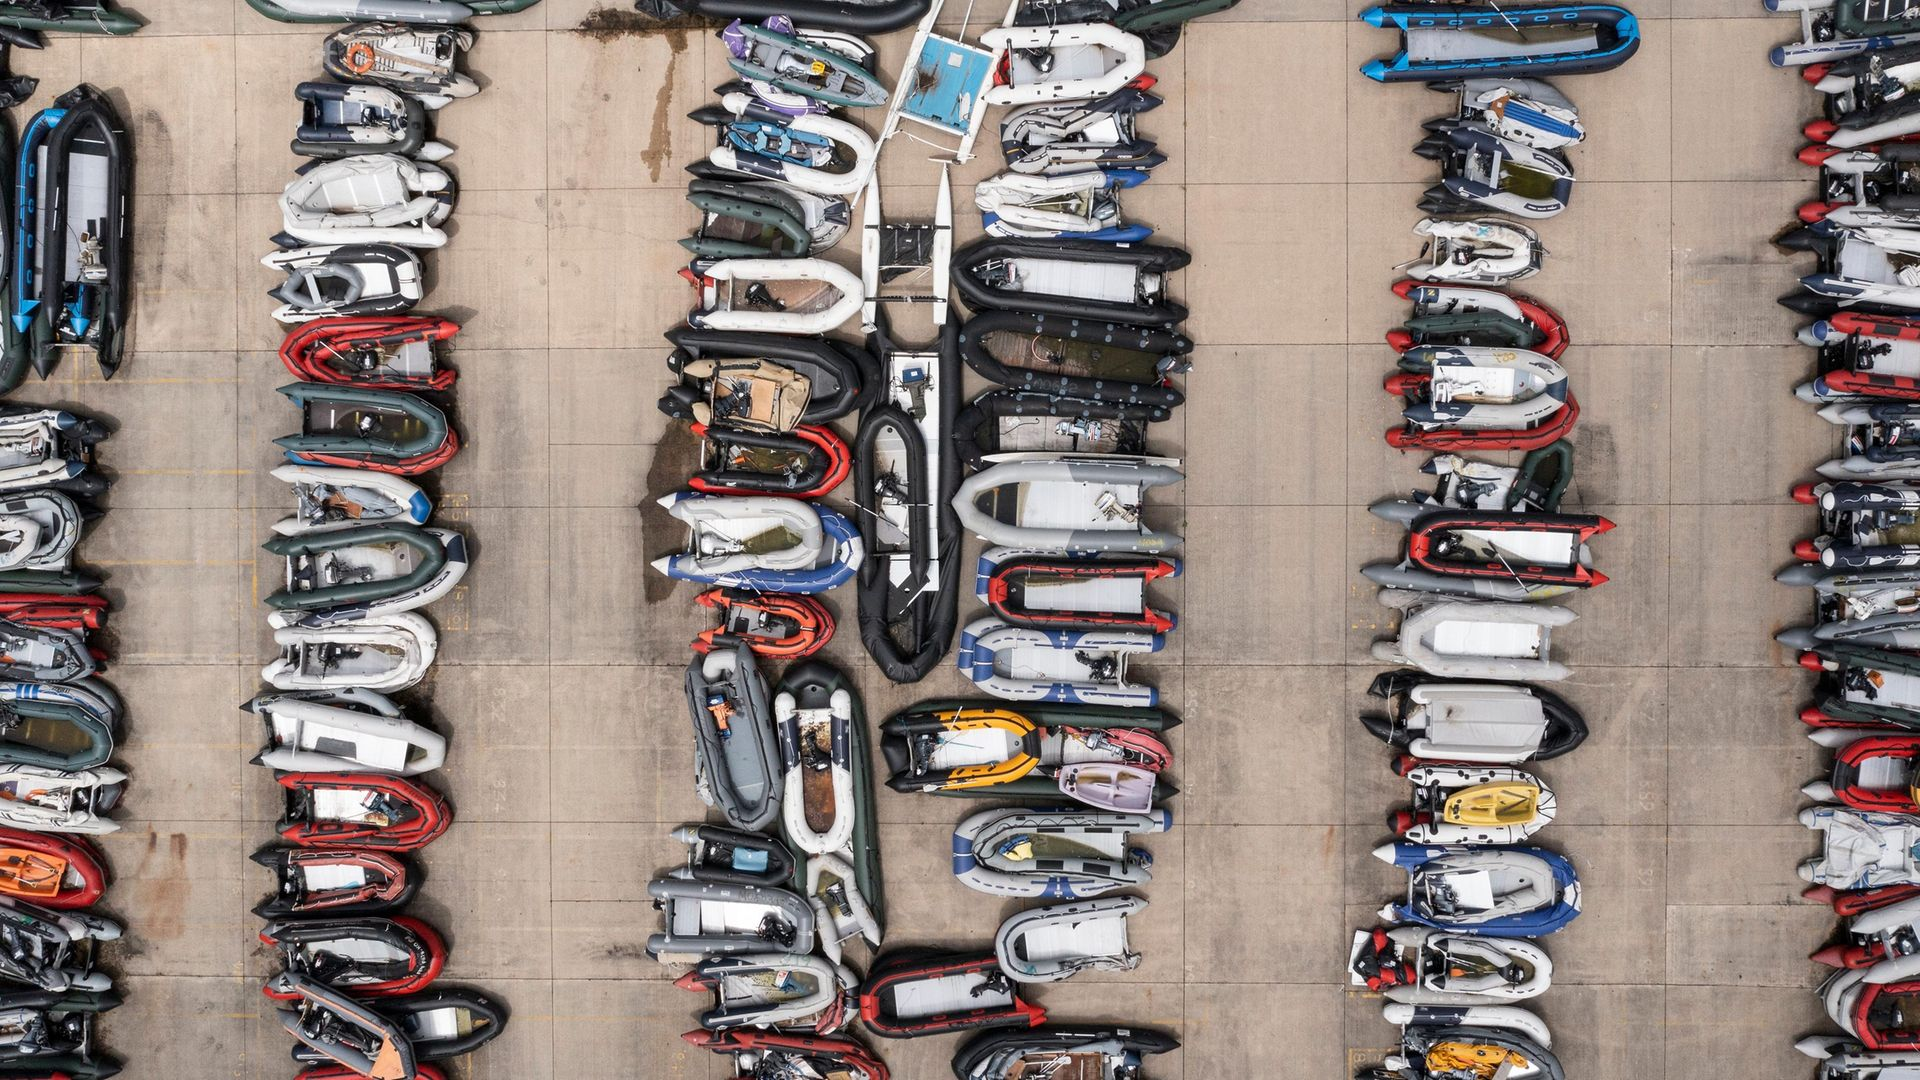 Inflatable dinghies used by migrants to cross the channel from France are stored in a compound in Dover, England - Credit: Getty Images